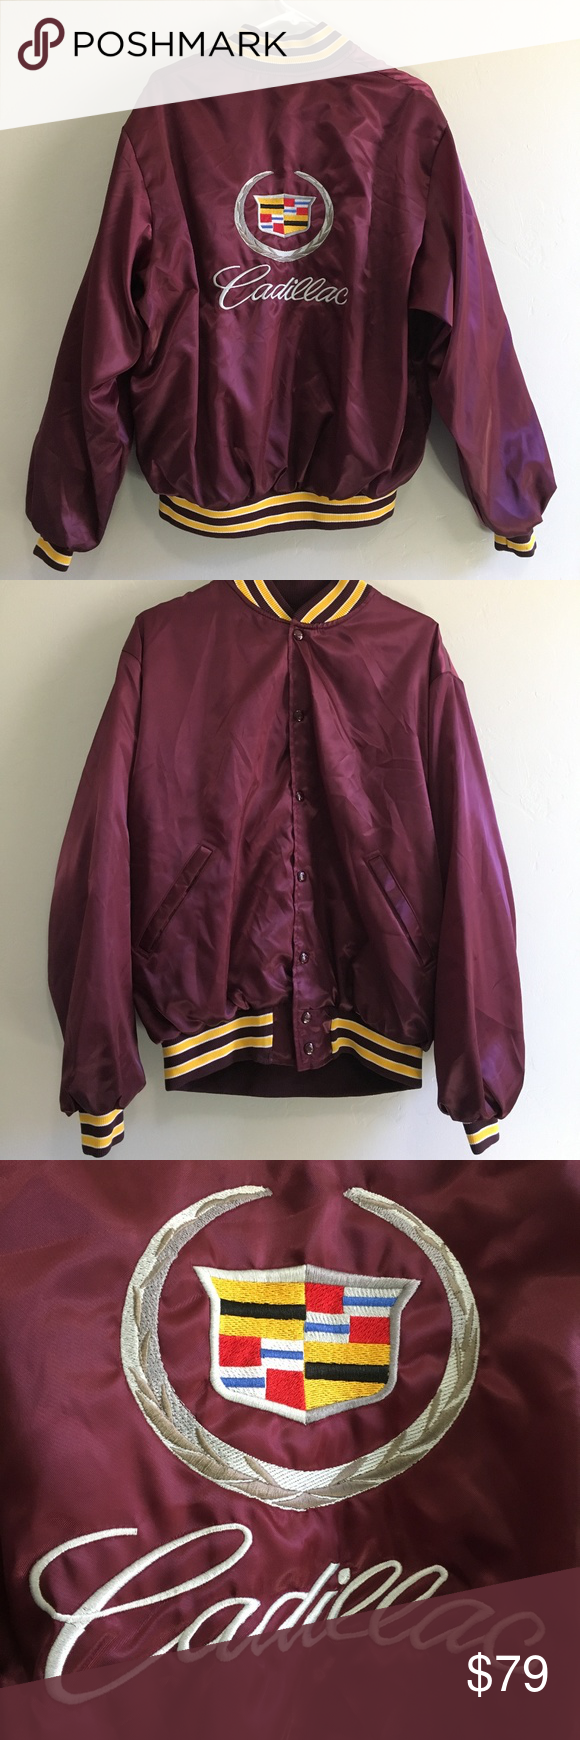 Purple flannel men  Mens Cadillac Logo Baseball Jacket Medium Varsity  My Posh Closet